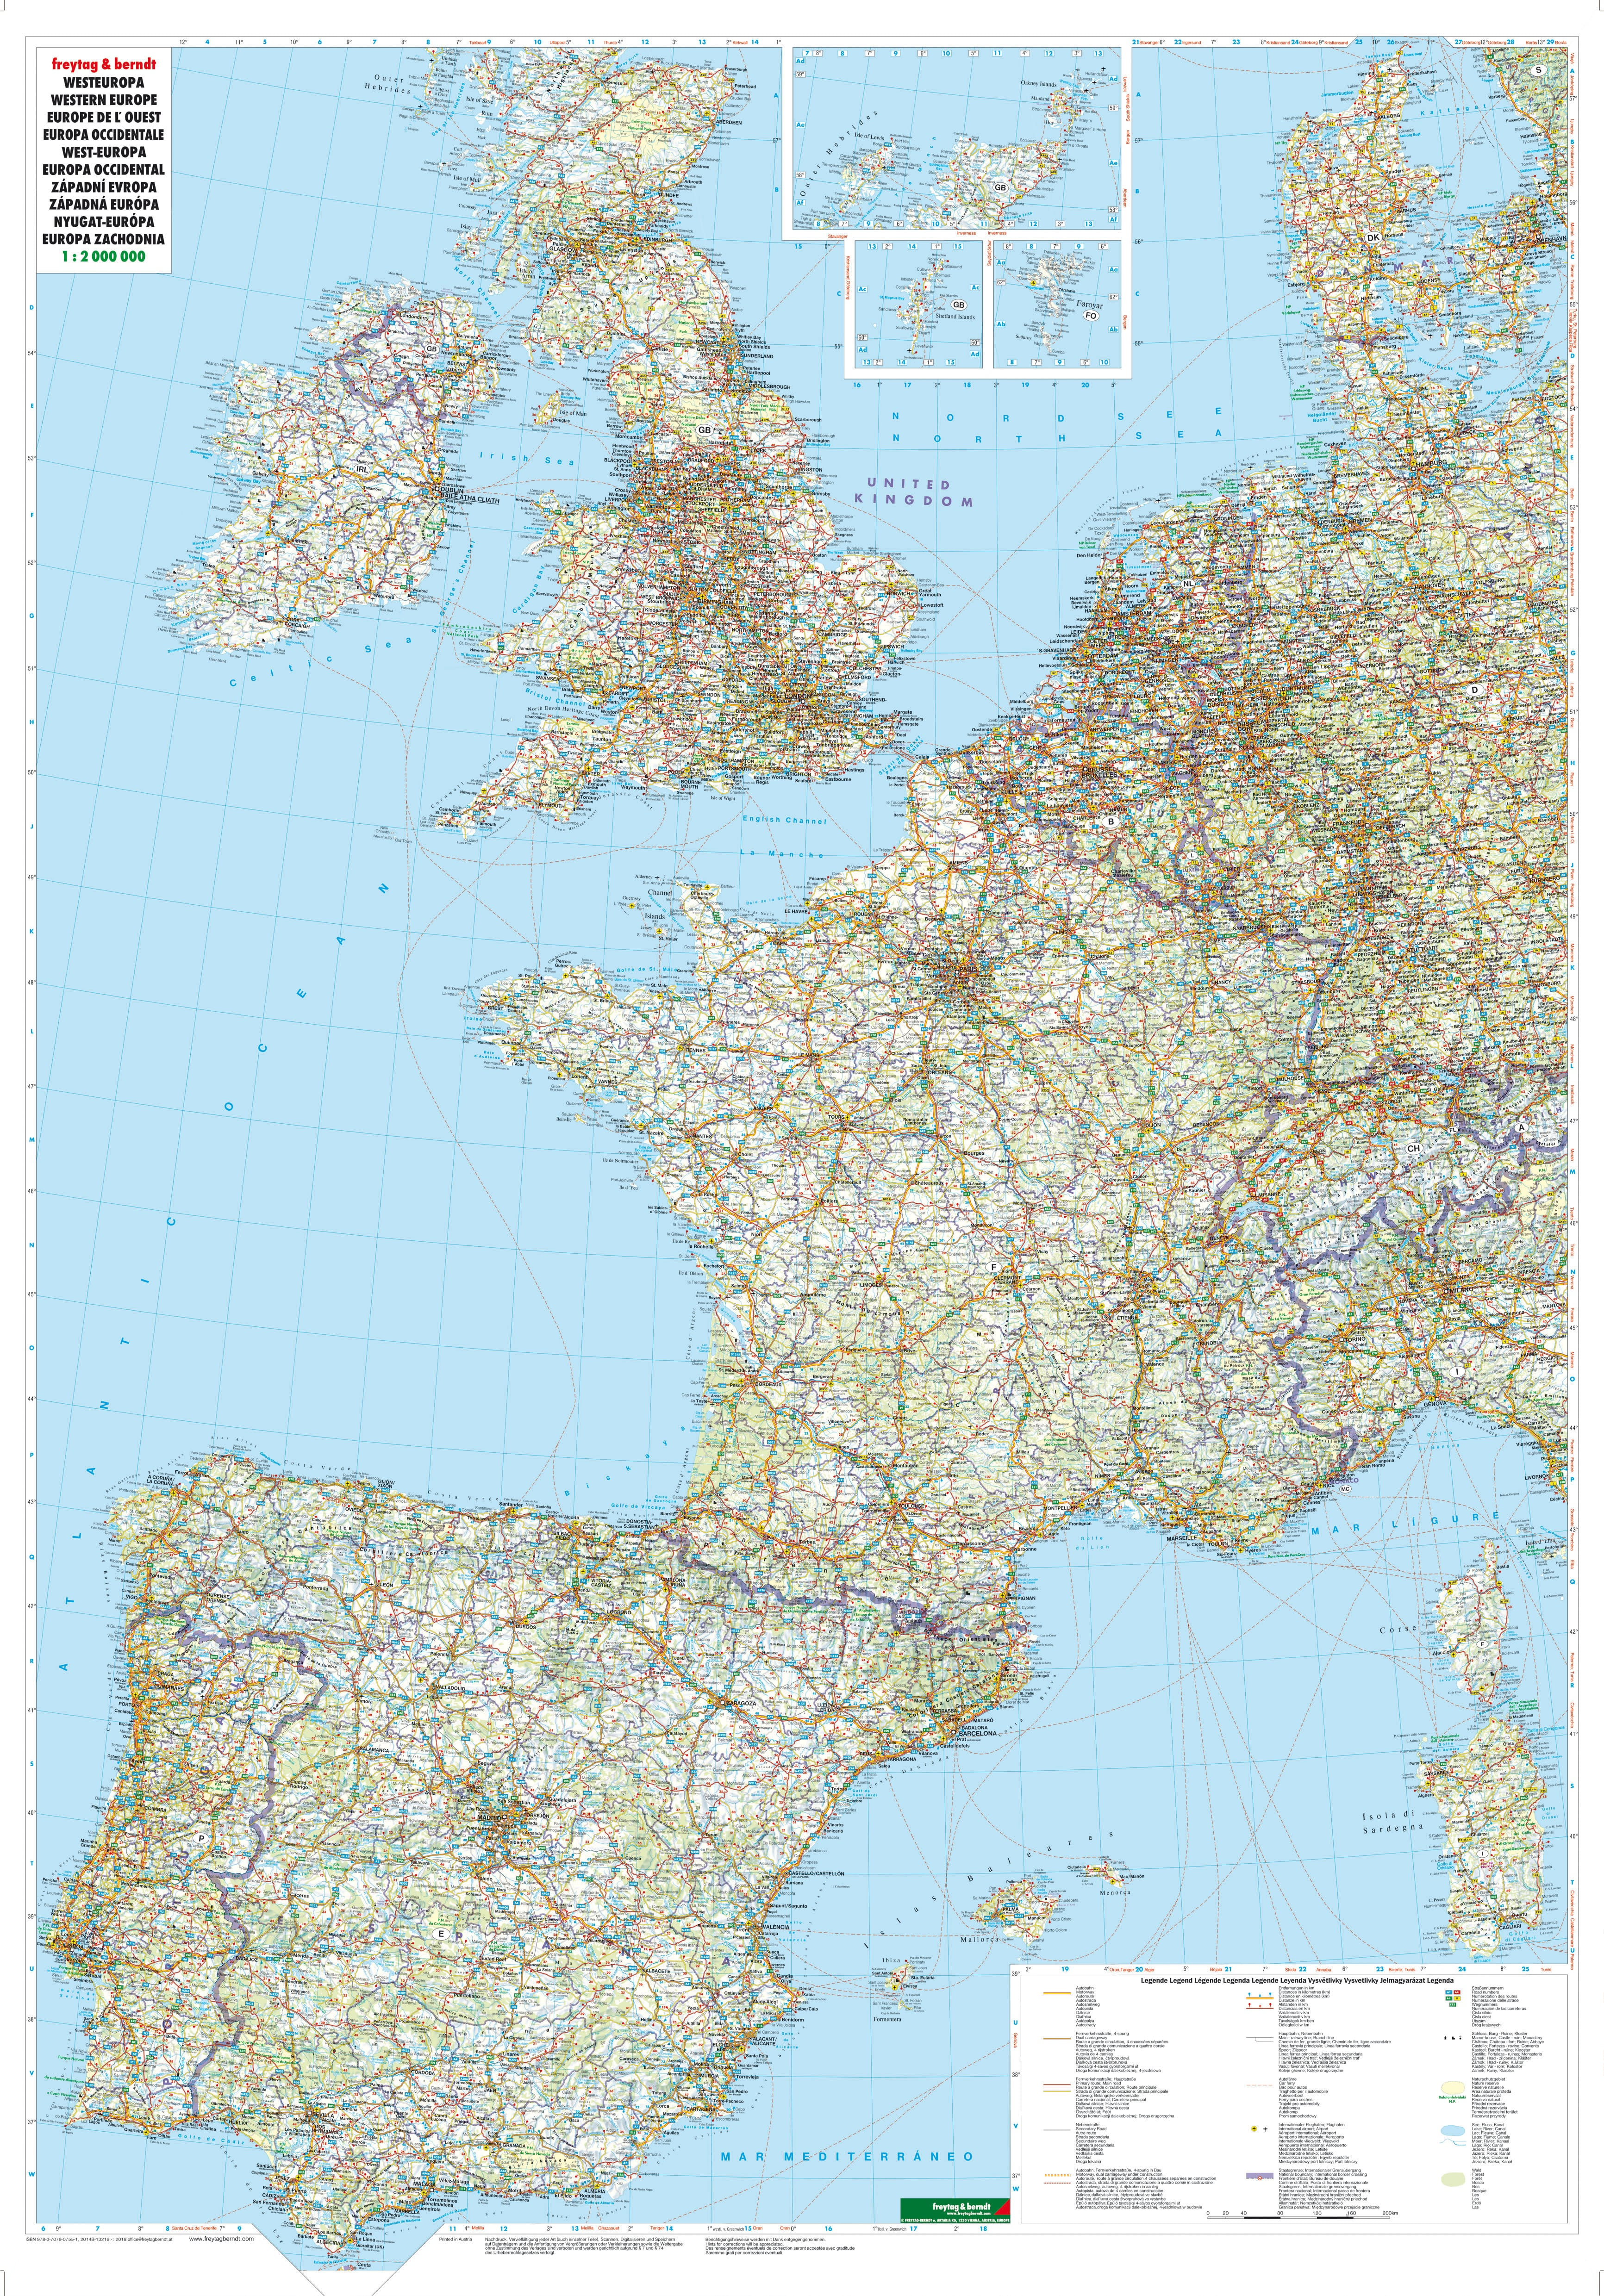 Western Europe Road Wall Map 87 x 124cm - Westeurope Countries ...